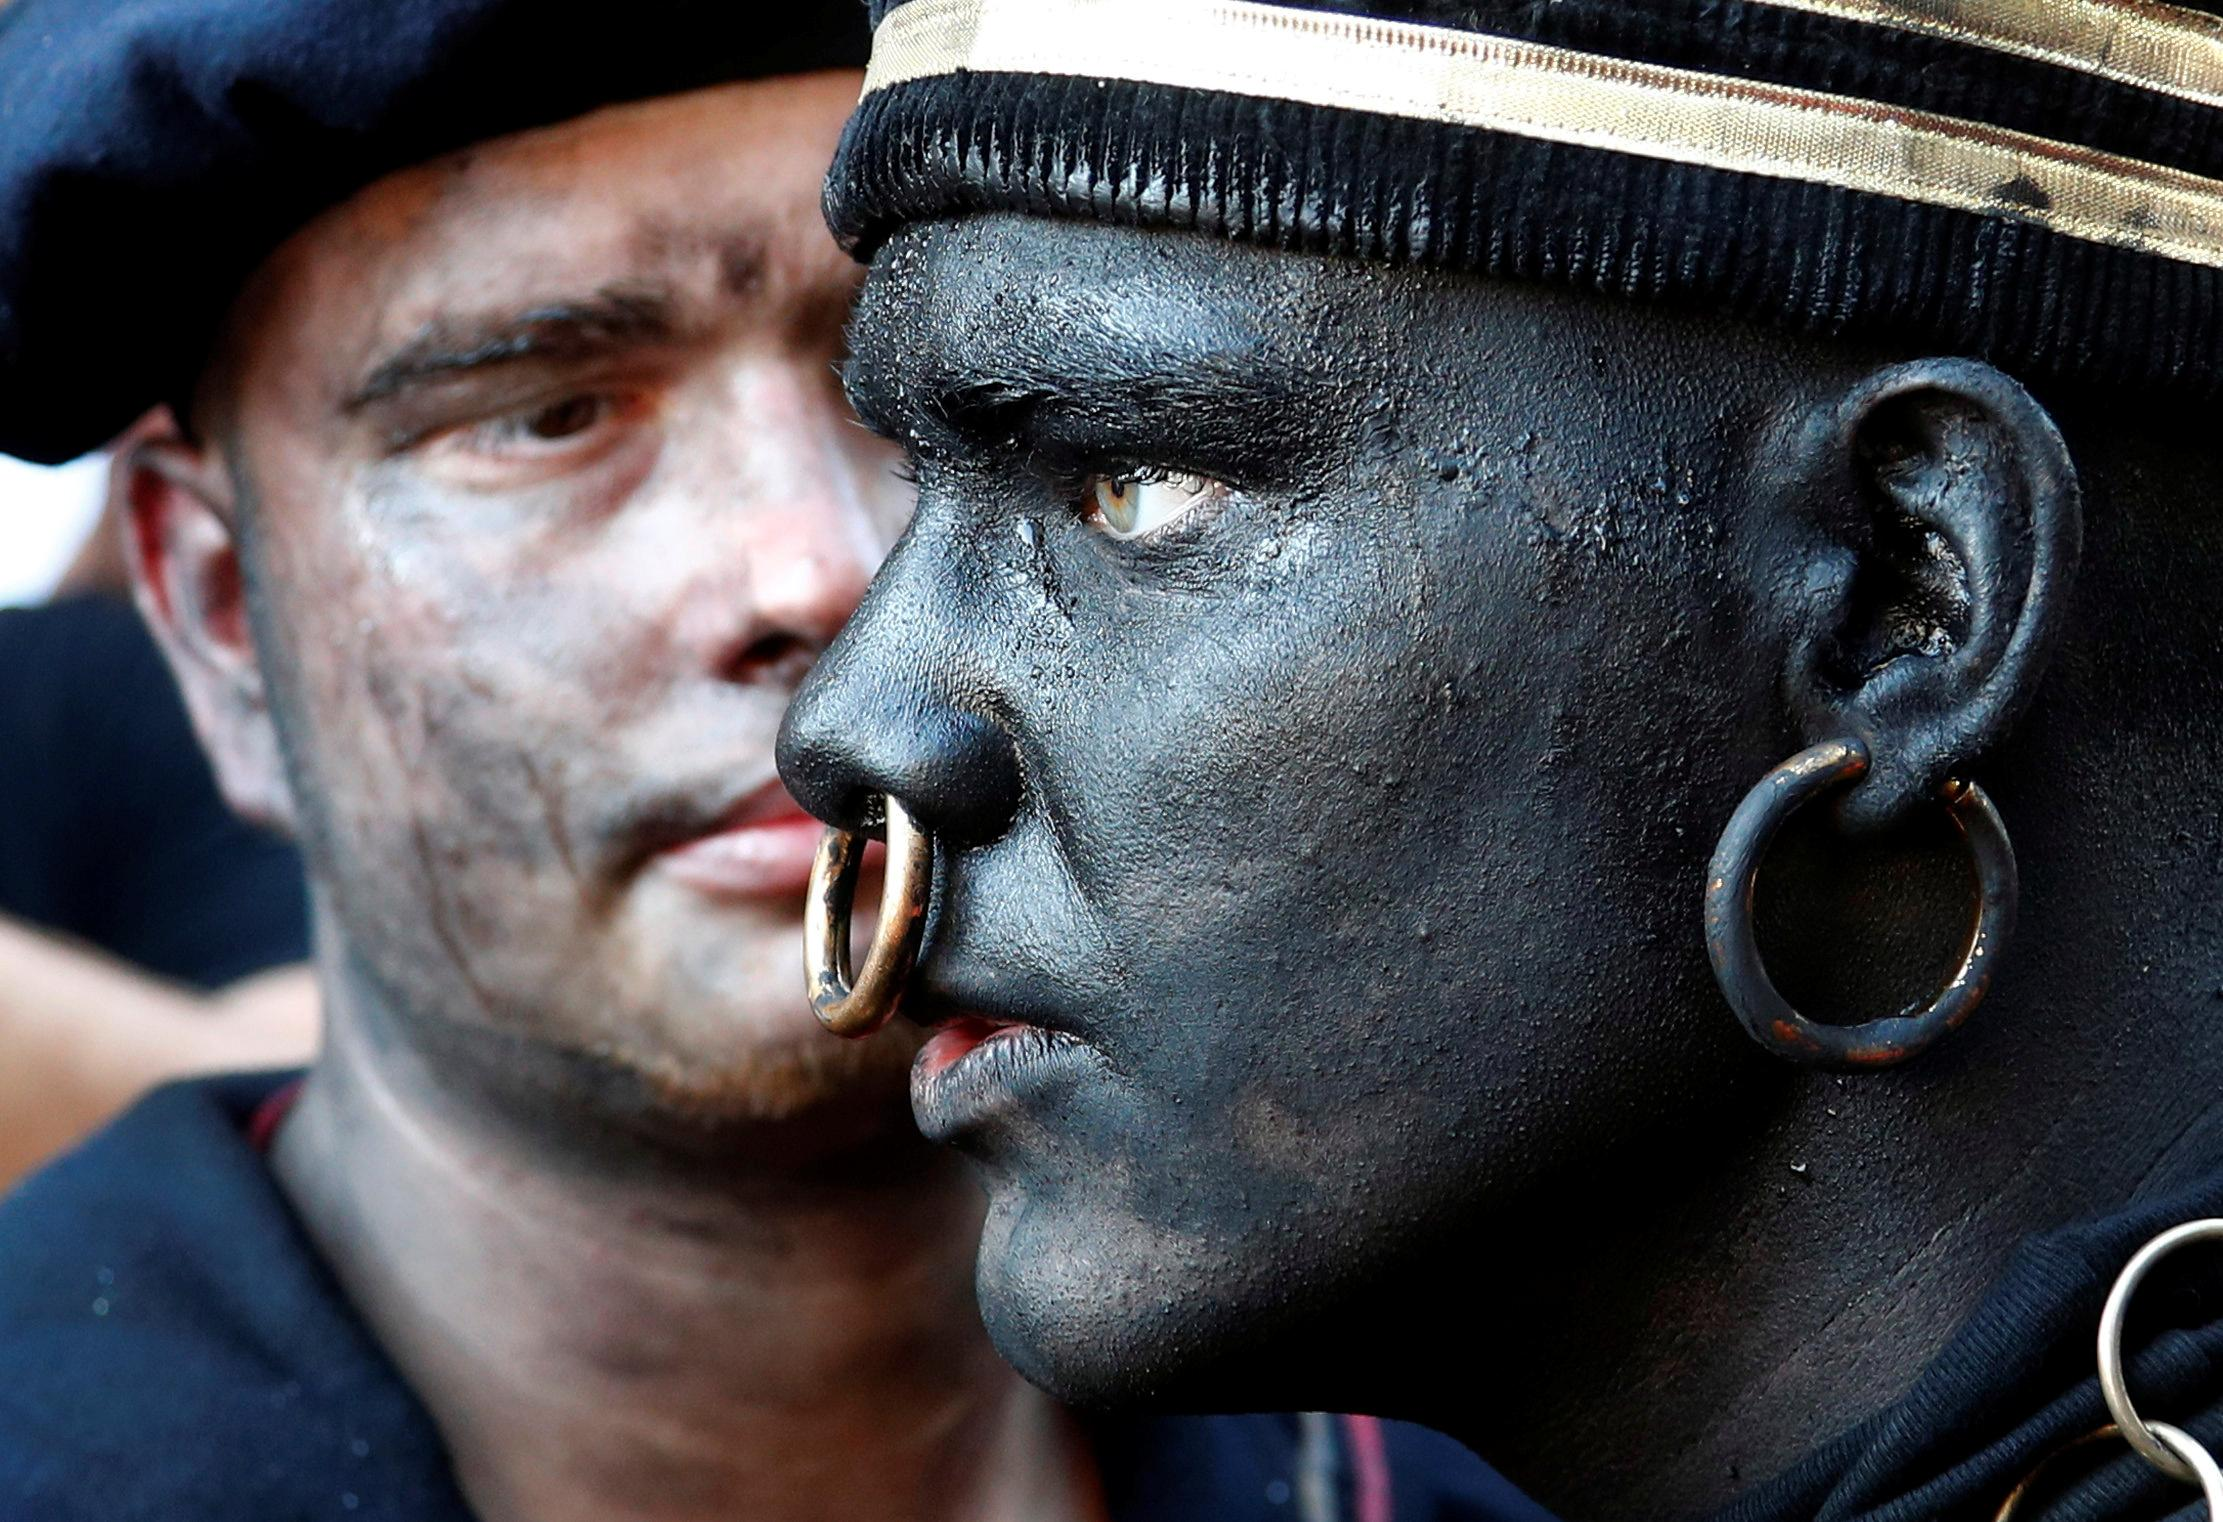 Belgian festival draws criticism over blackface 'Savage' character